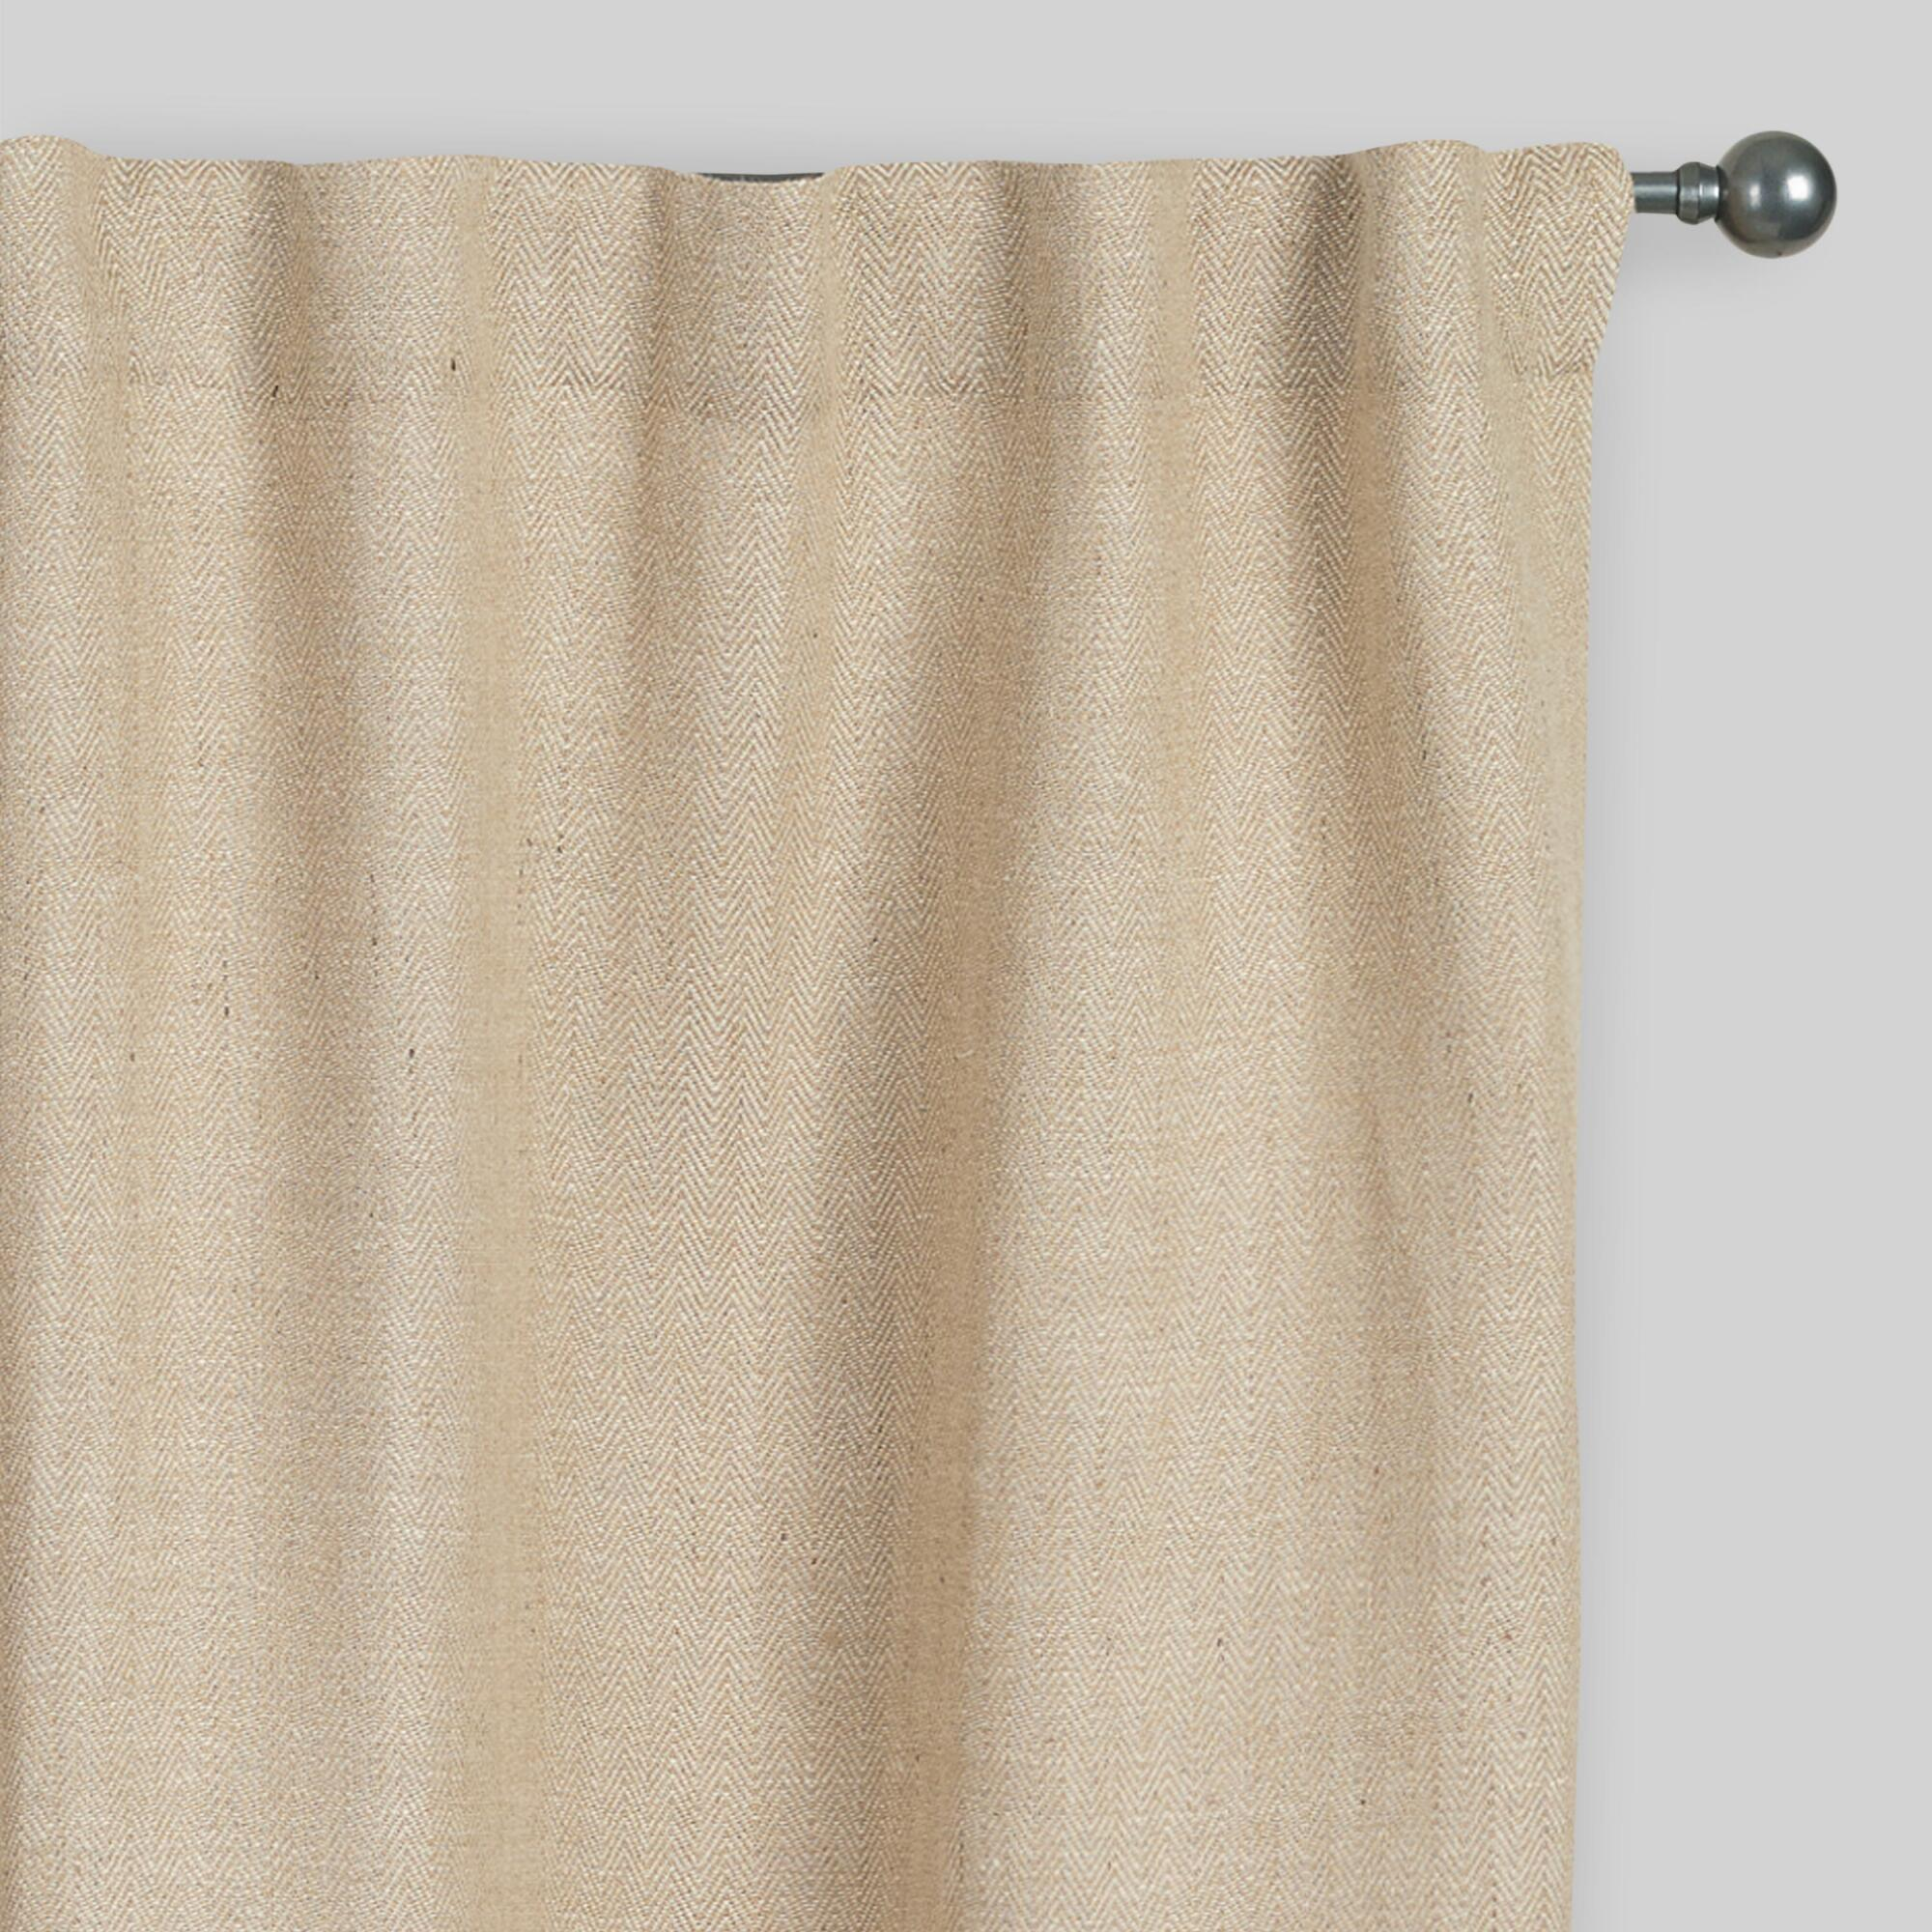 Blinds and curtains combination bedroom - Natural Herringbone Jute Sleevetop Curtains Set Of 2